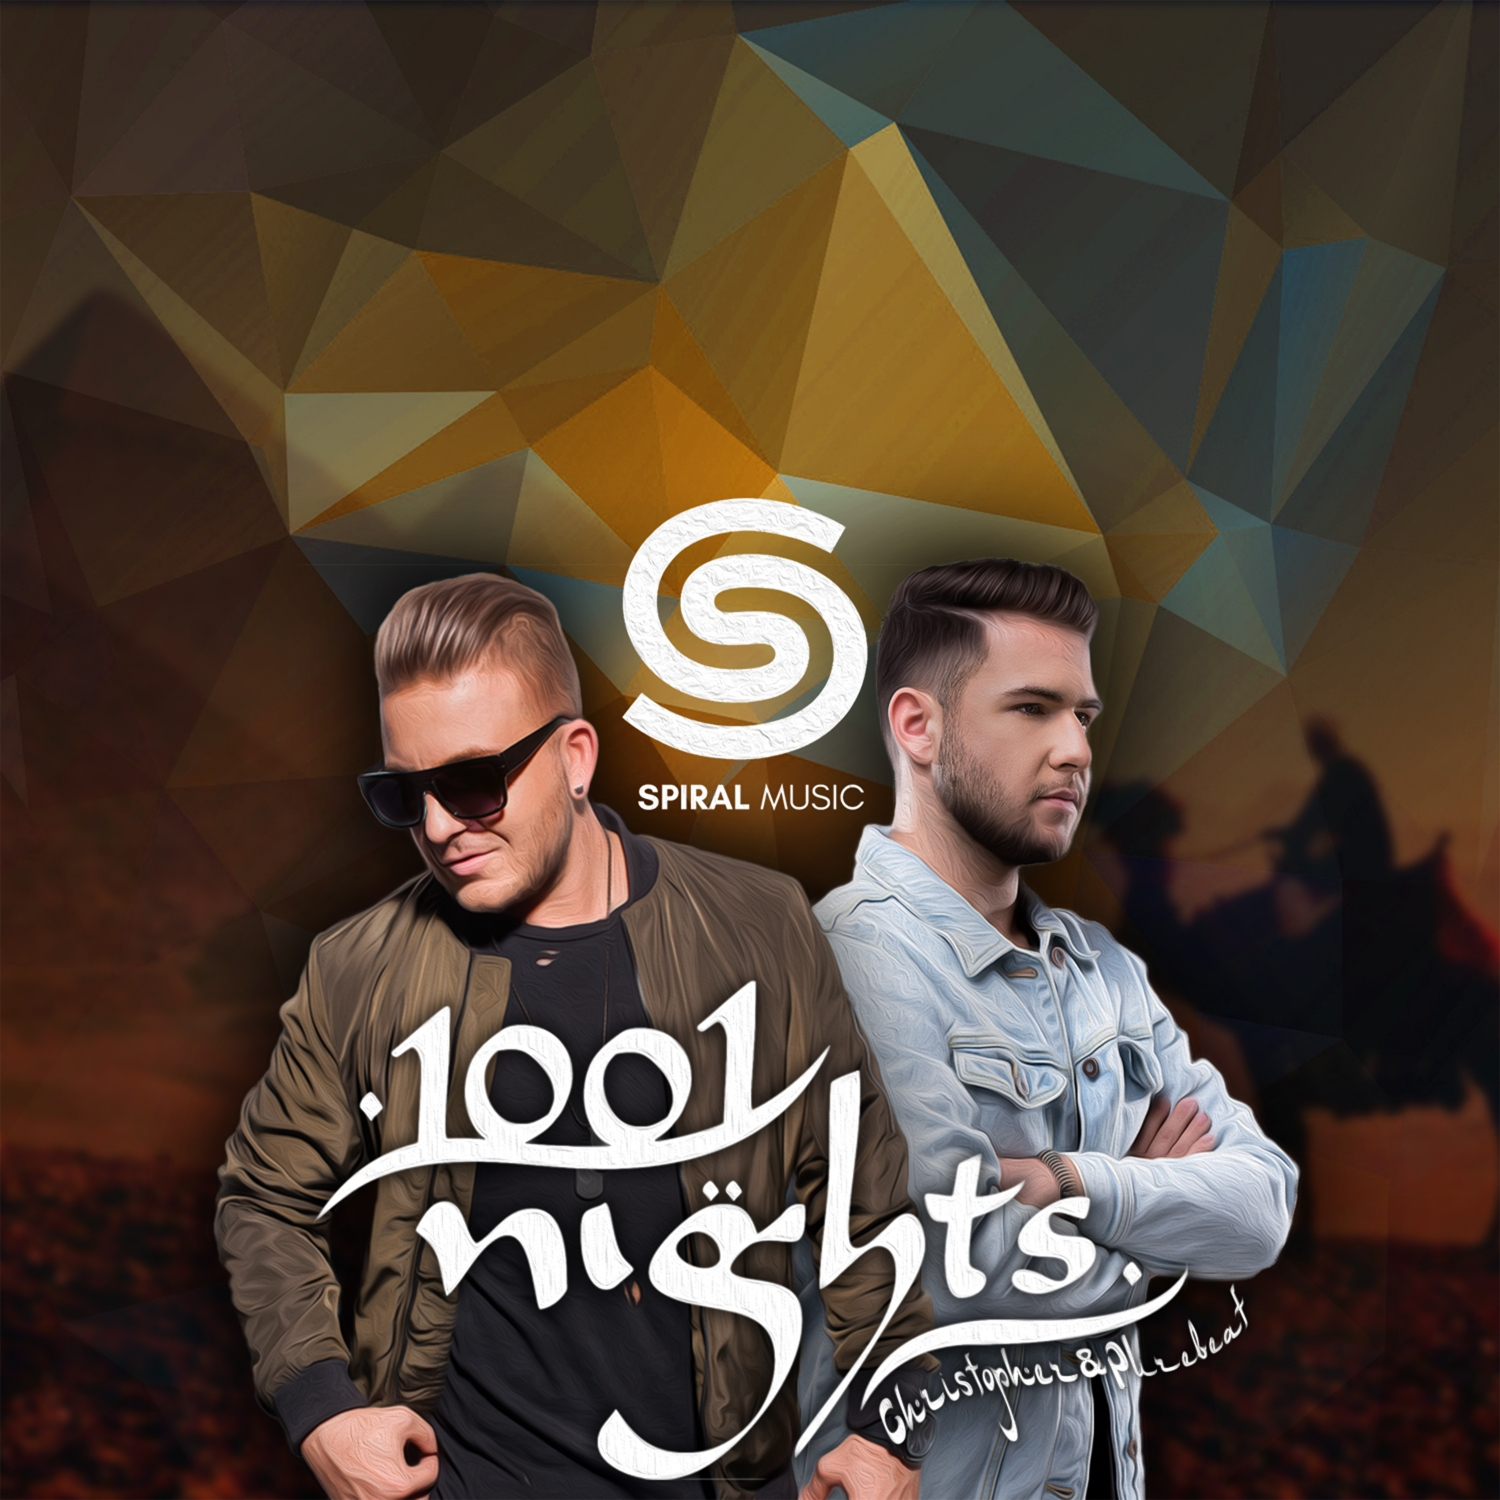 DJ Christopher & Purebeat - 1001 Nights (Original Mix)